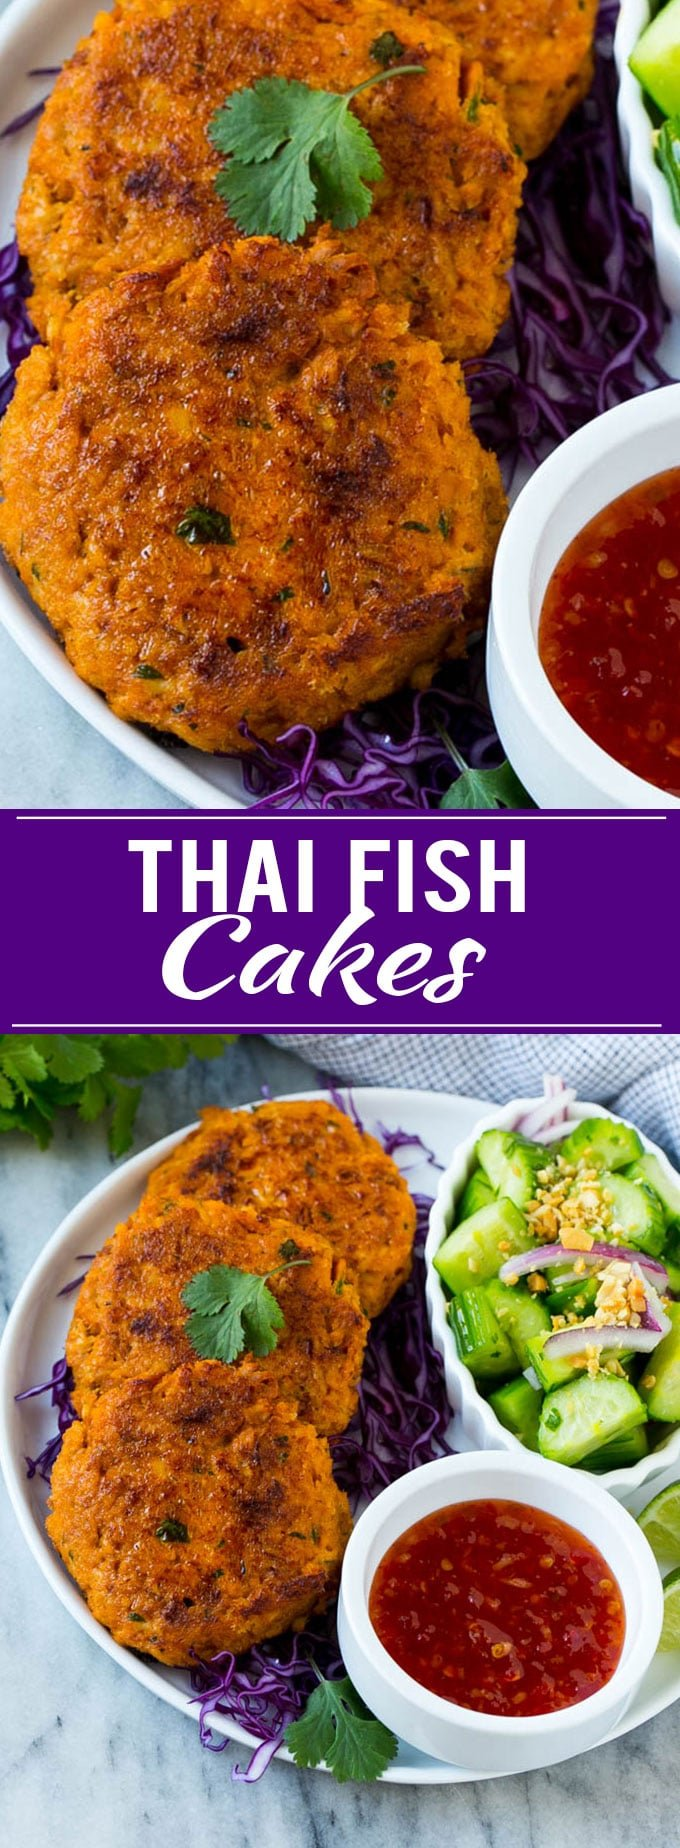 Thai Fish Cakes | Salmon Patties | Thai Food #fish #salmon #thaifood #dinner #dinneratthezoo